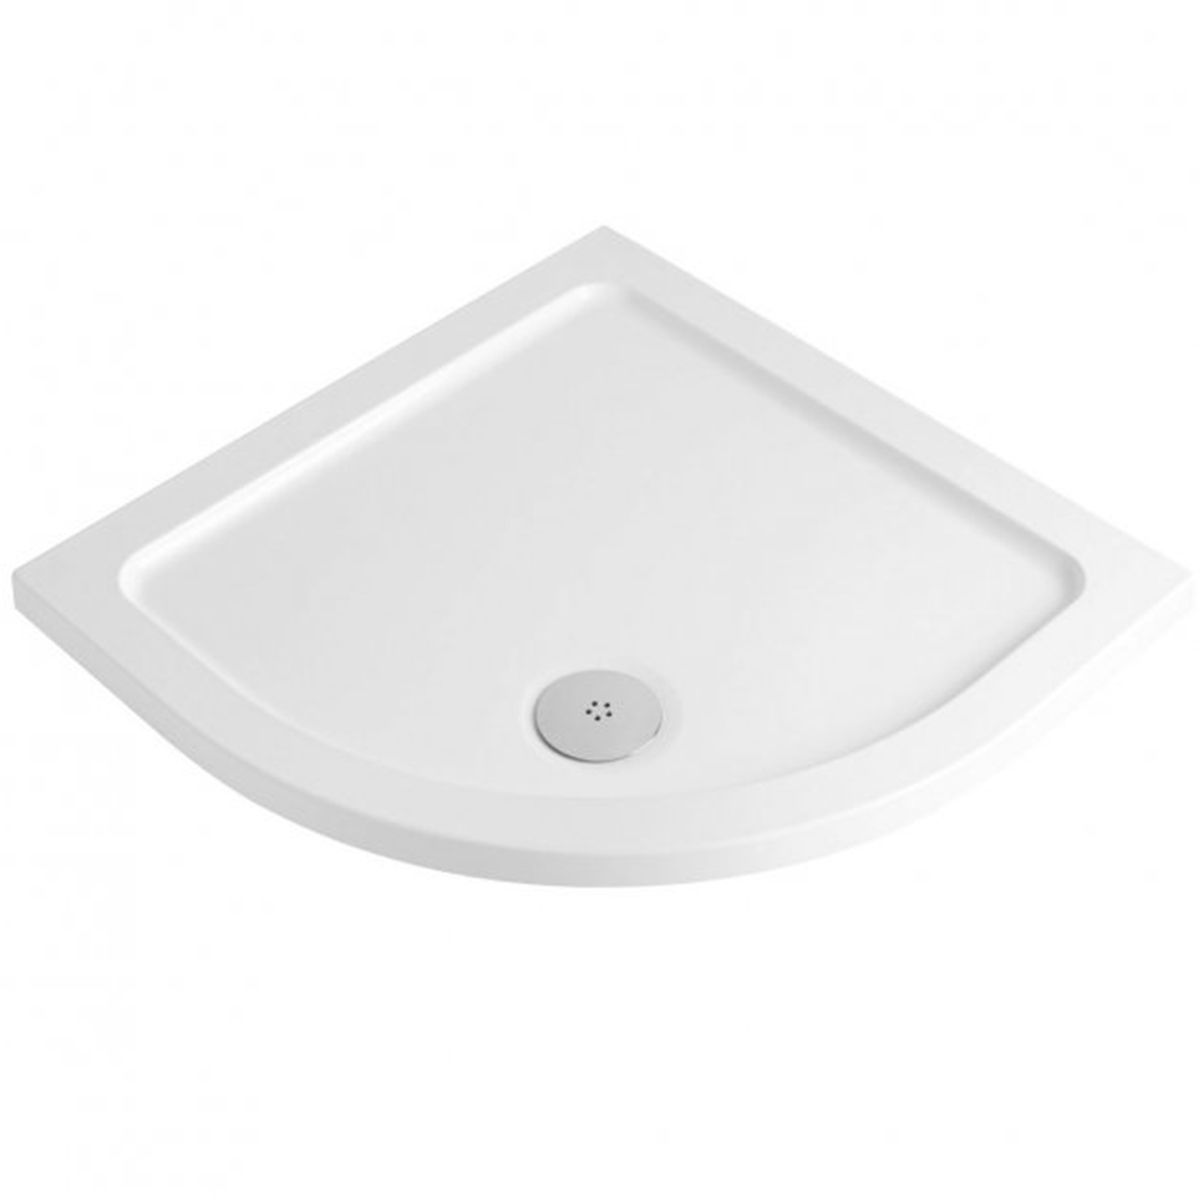 Bathrooms To Love Reflex Quadrant Low Profile Shower Tray with Waste 1000mm x 1000mm